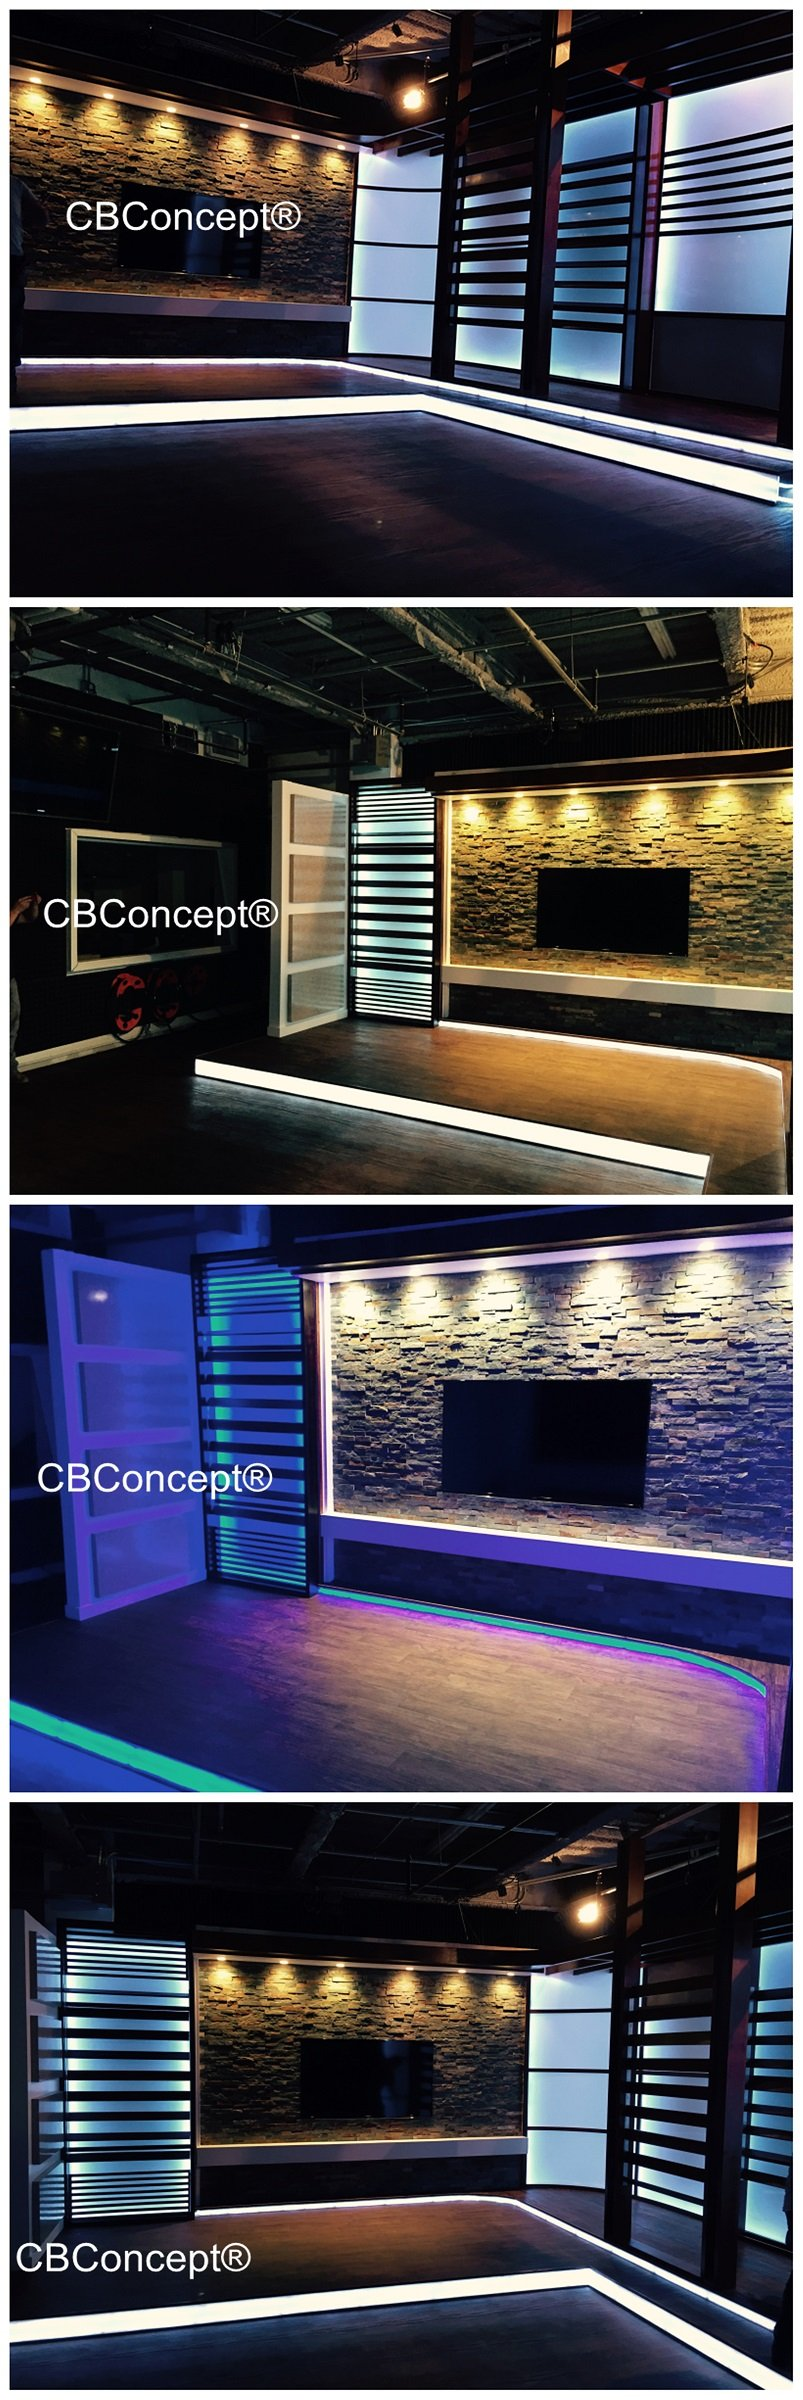 CBConcept UL Listed, 10 Feet,Super Bright 2700 Lumen, 6000K Pure White, Dimmable, 110-120V AC Flexible Flat LED Strip Rope Light, 180 Units 5050 SMD LEDs, Indoor/Outdoor Use, [Ready to use] by CBconcept (Image #8)